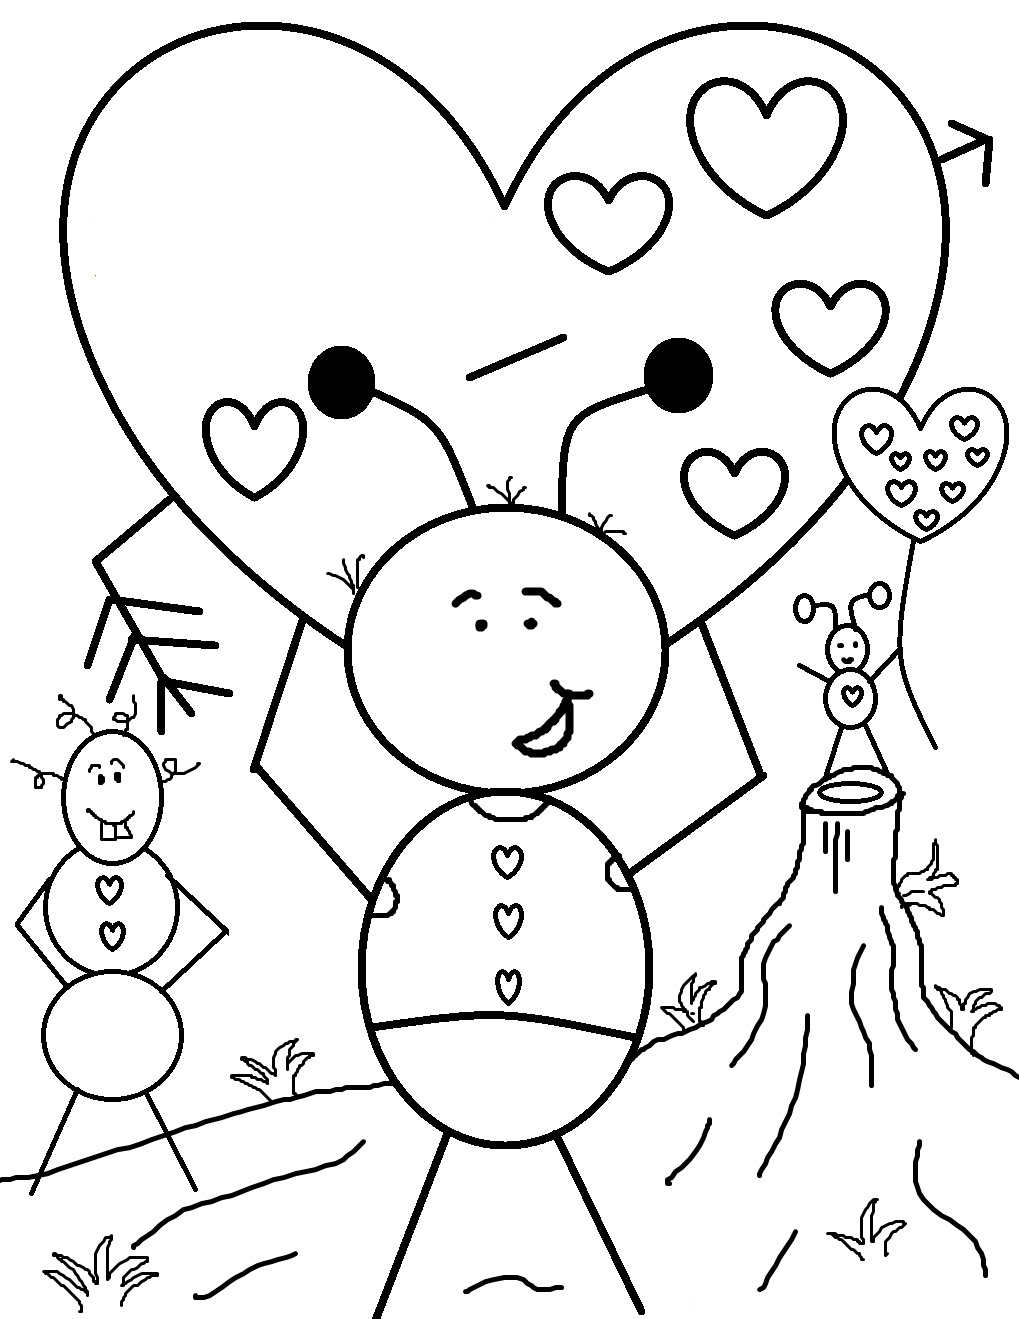 image regarding Printable Valentine Color Pages identify No cost Printable Valentine Coloring Webpages For Children